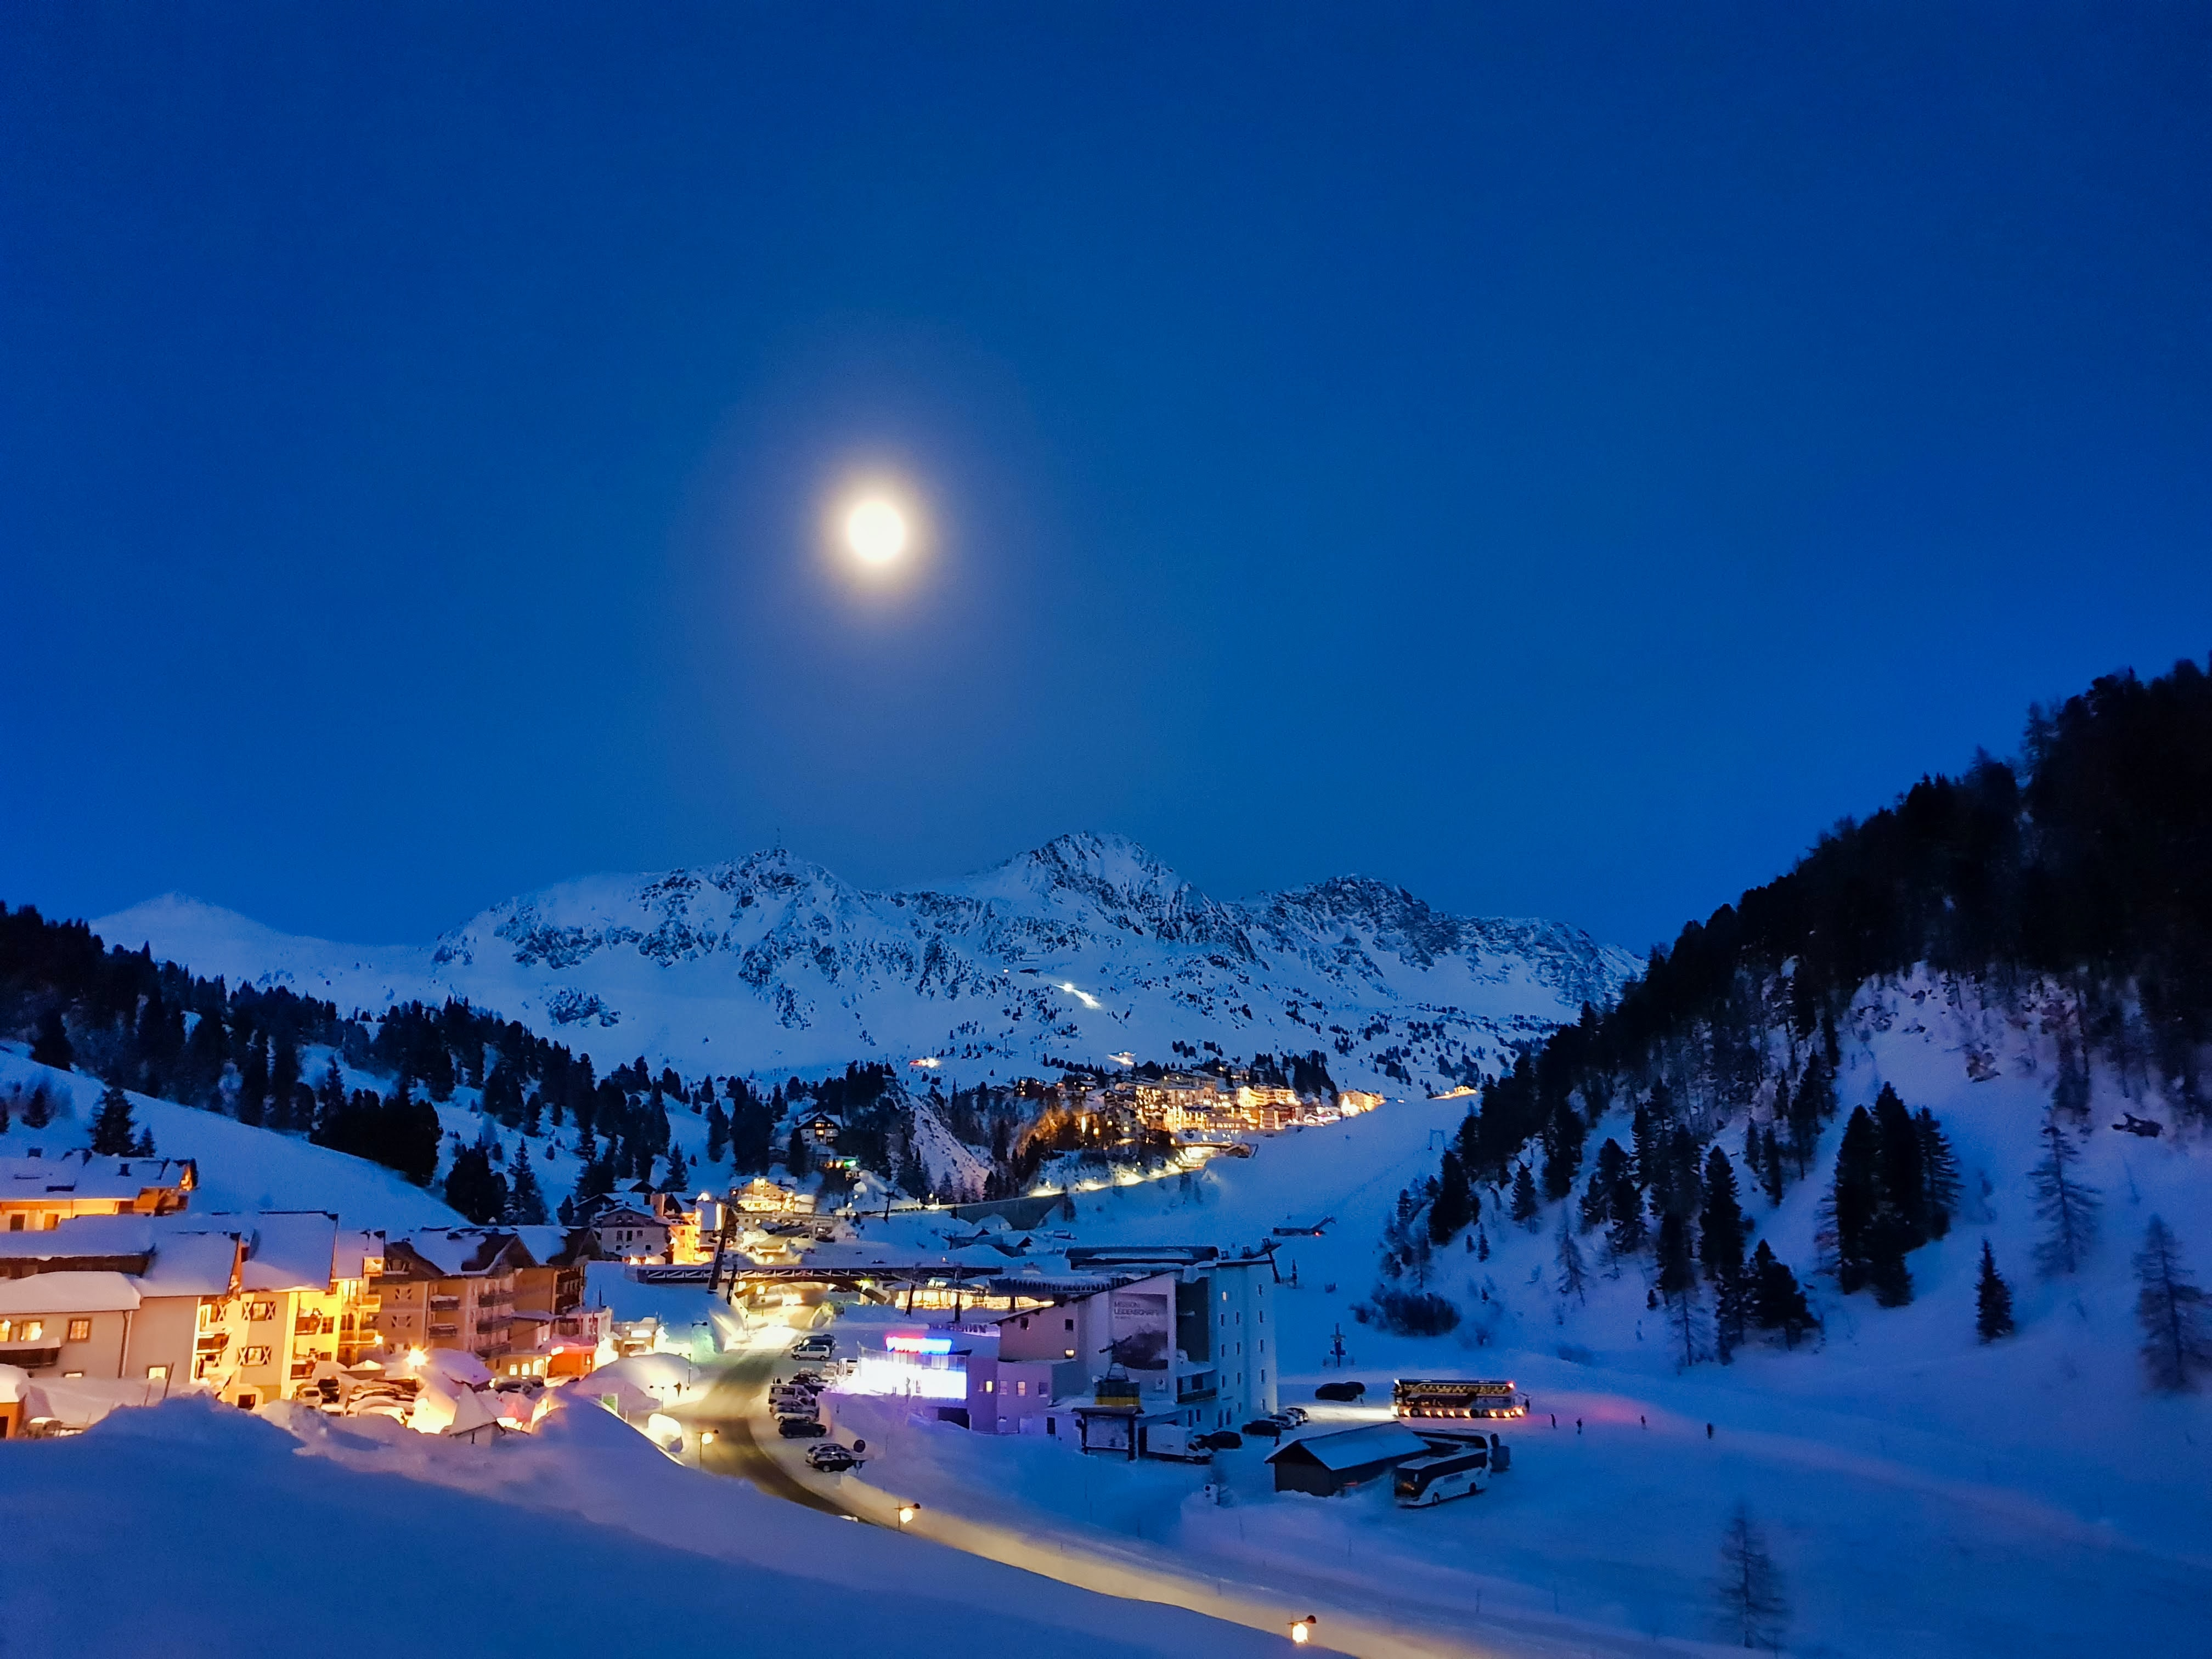 lighted buildings and houses with snow covered field during night time